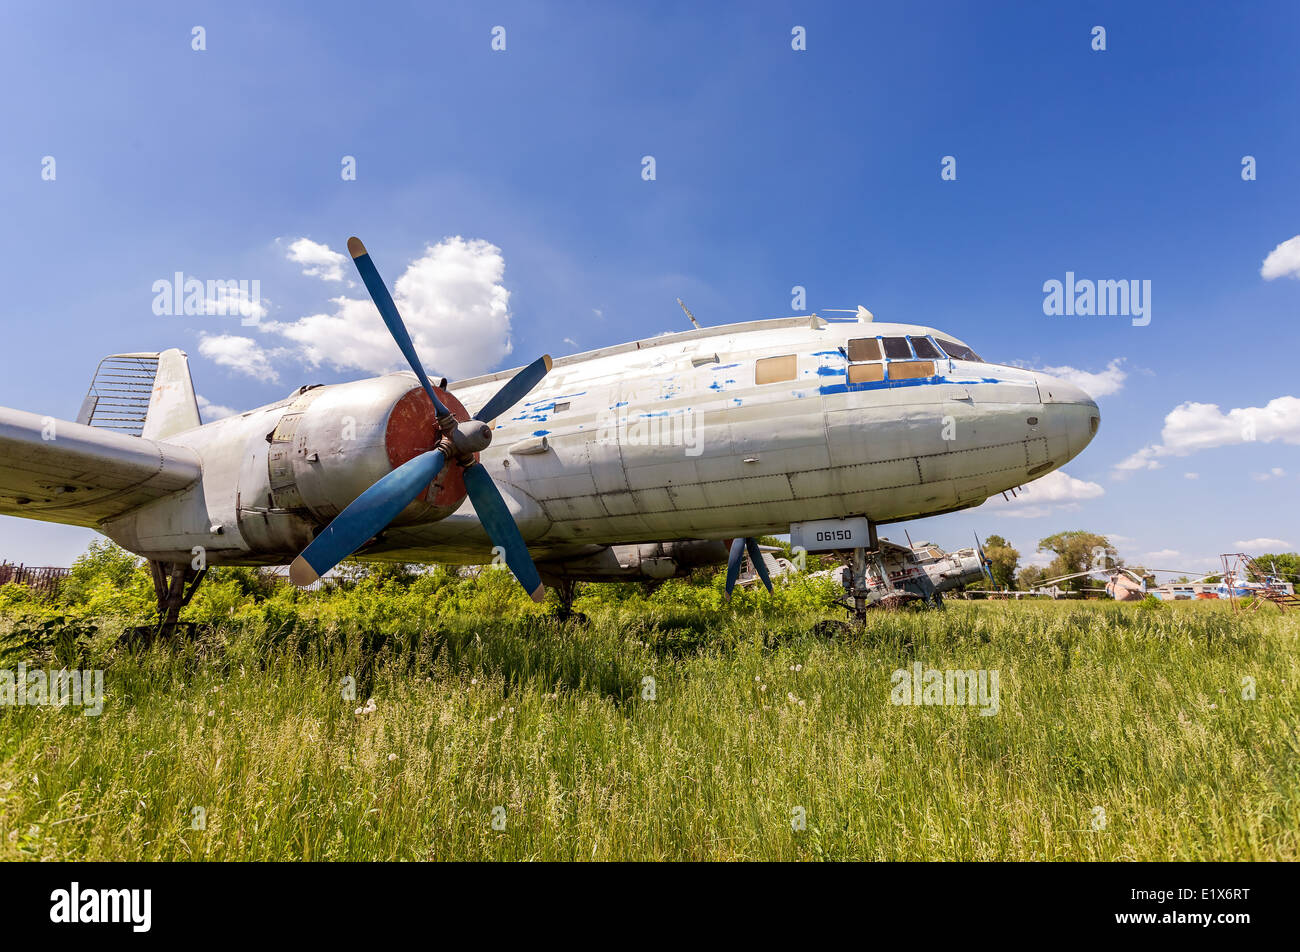 Old russian turboprop aircraft Il-14M at an abandoned aerodrome in summertime - Stock Image